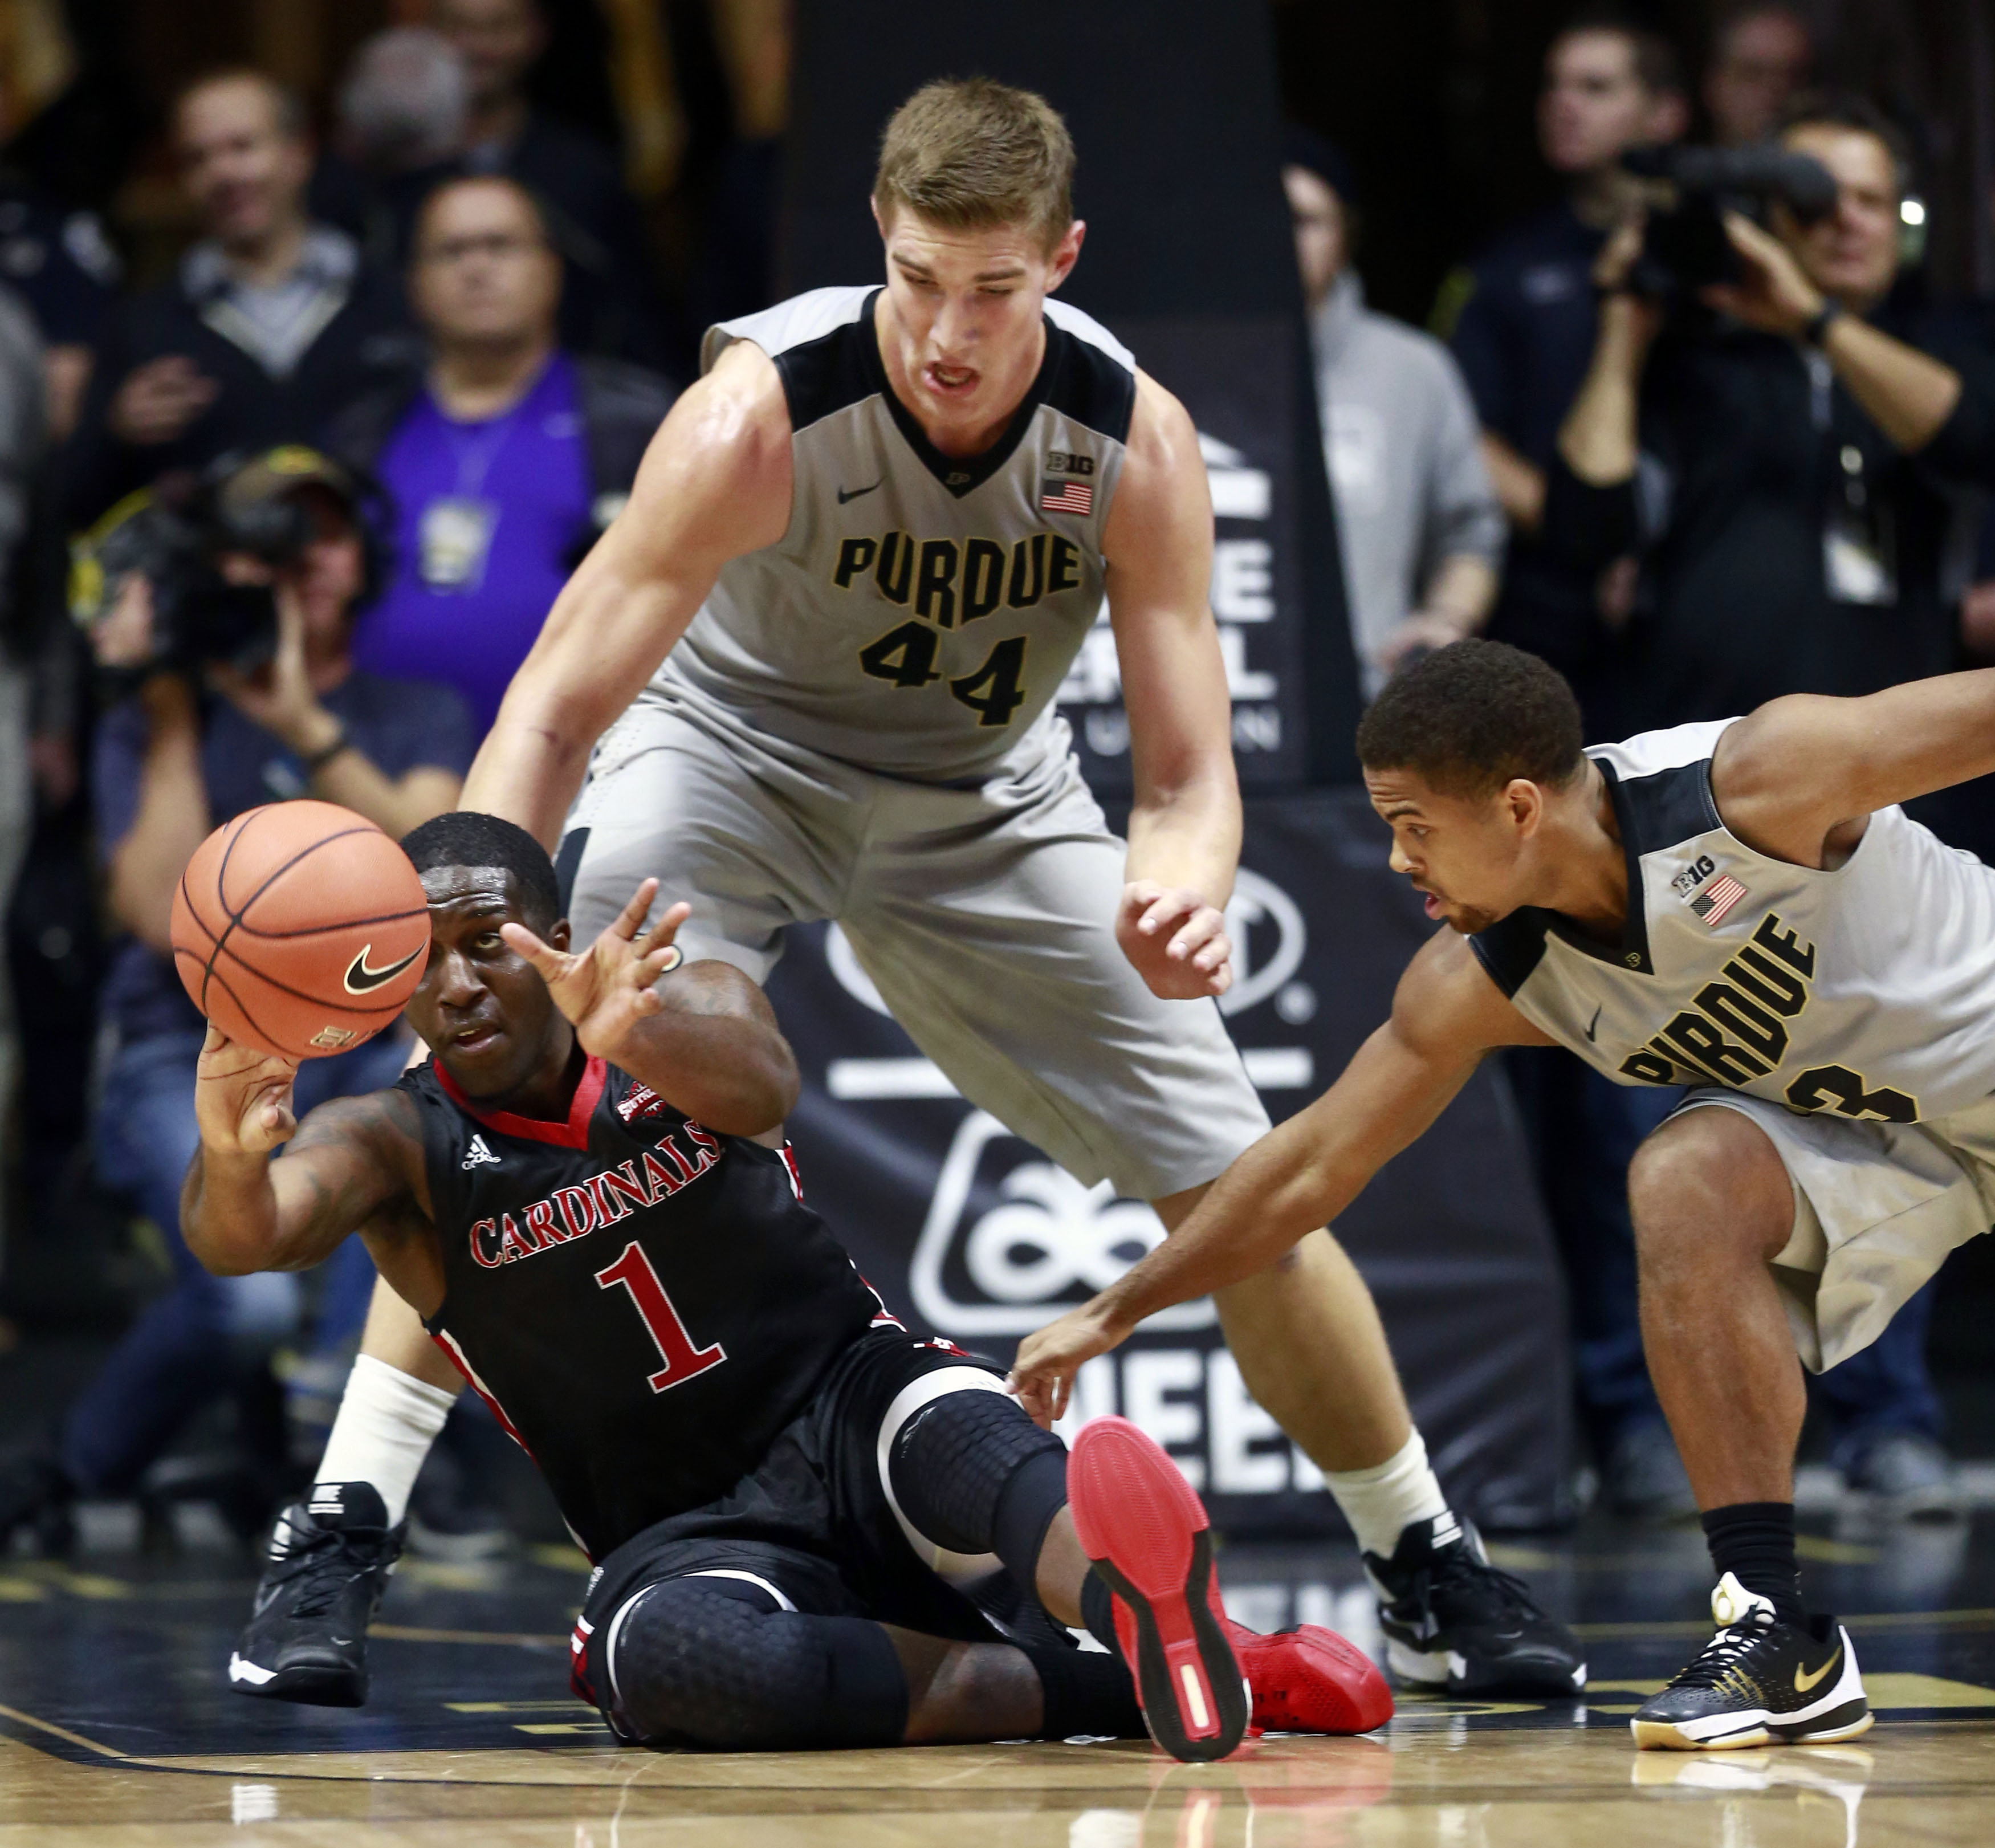 Incarnate Word forward Derail Green (1) passes the basketball while on the floor near Purdue center Isaac Haas (44) and guard P.J. Thompson in the first half of an NCAA college basketball game Wednesday, Nov. 18, 2015, in West Lafayette, Ind. Purdue won 9